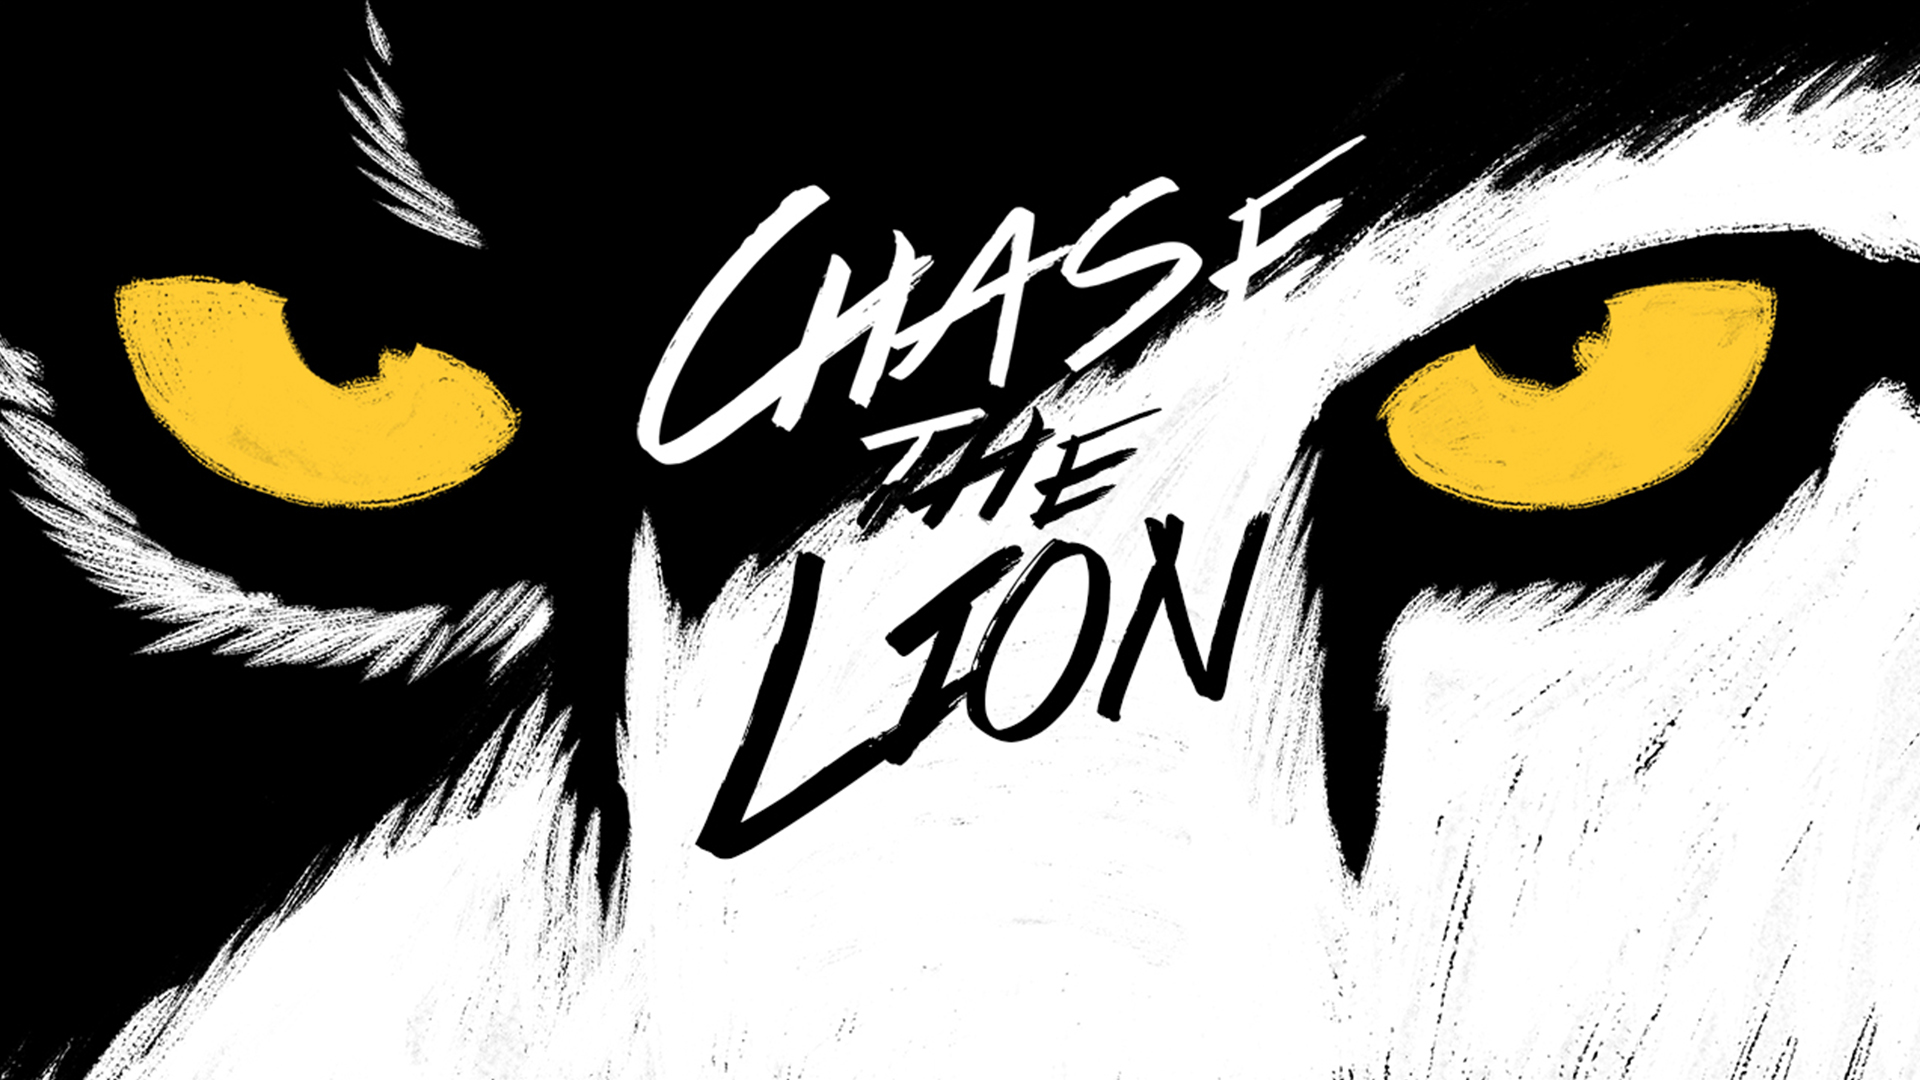 Chase the Lion  This series from June will showcase how to survive and thrive when opportunity roars. Your greatest regrets at the end of your life will be the lions you didn't chase.